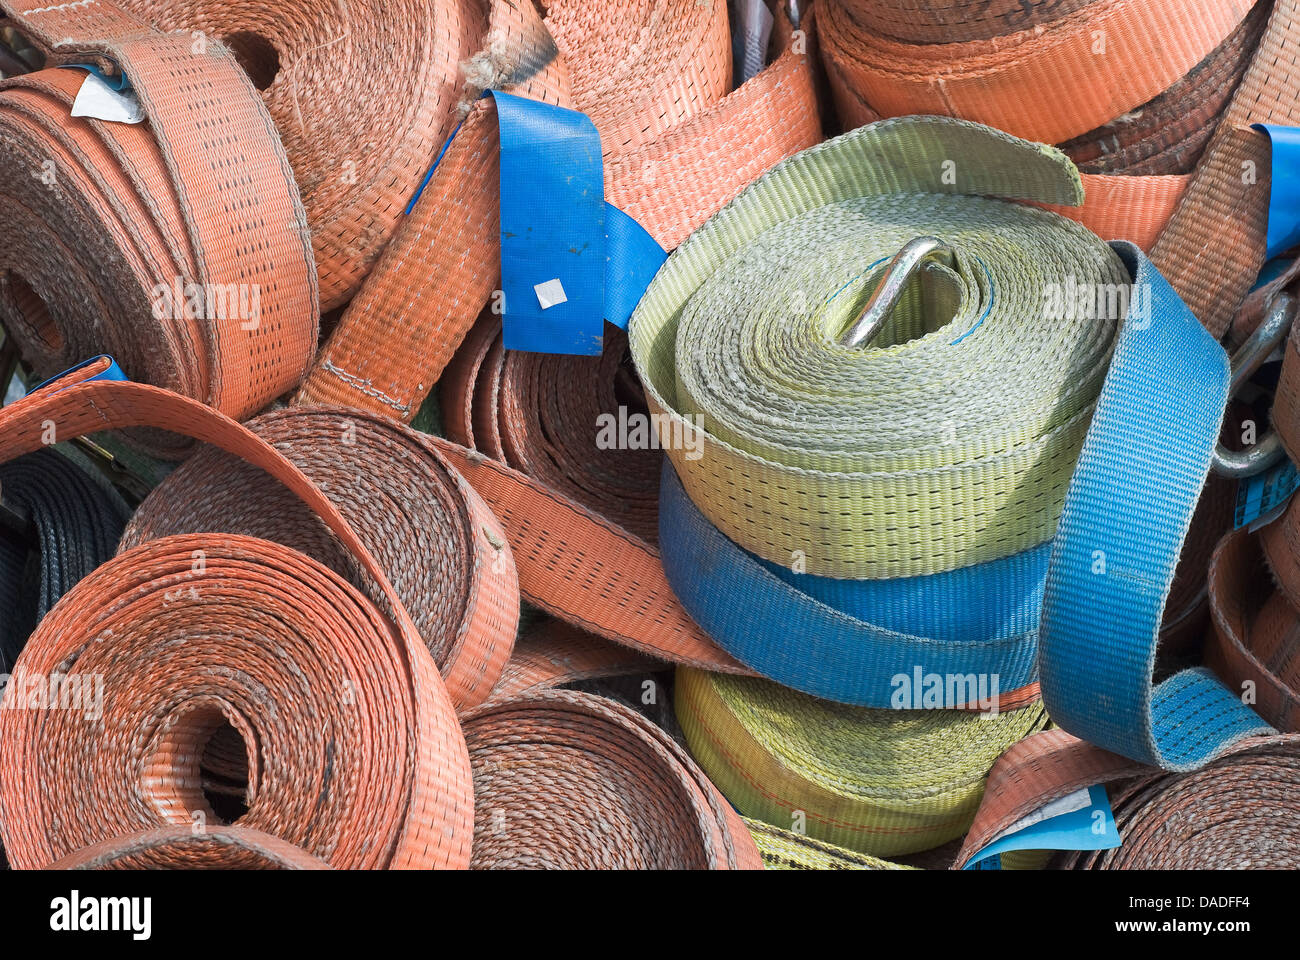 Heavy Duty Industrial Belts for Protection and Security - Stock Image